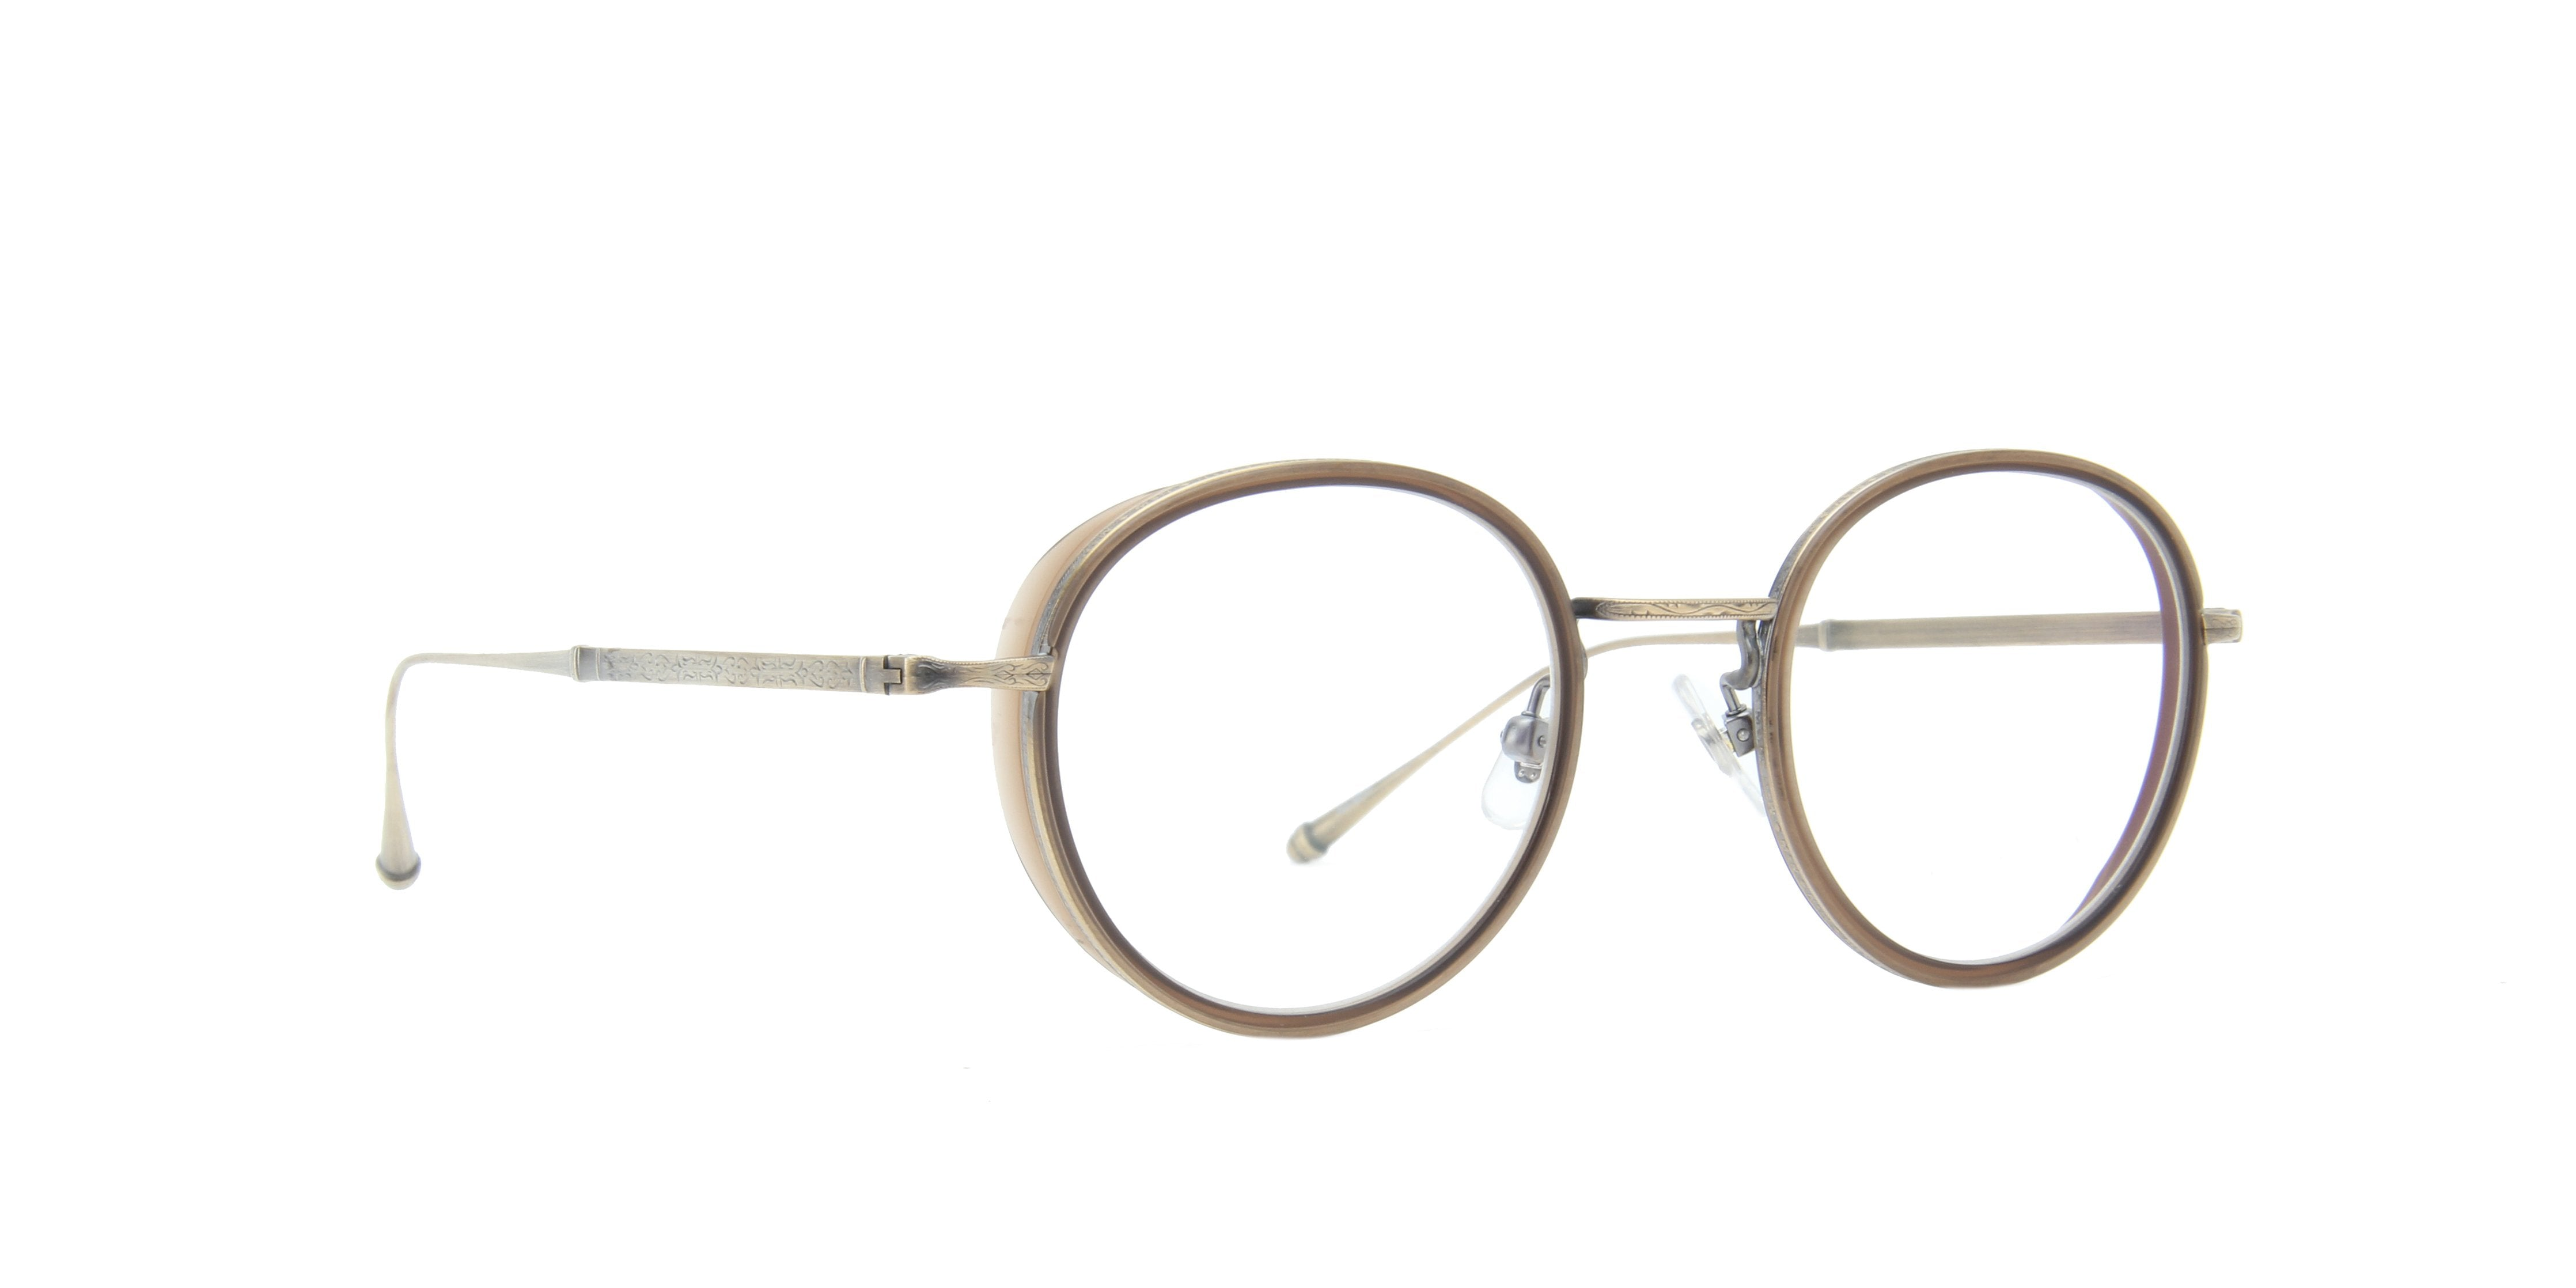 Matsuda - M3063 Antique Gold/Clear Oval Unisex Sunglasses - 47mm-Eyeglasses-Designer Eyes